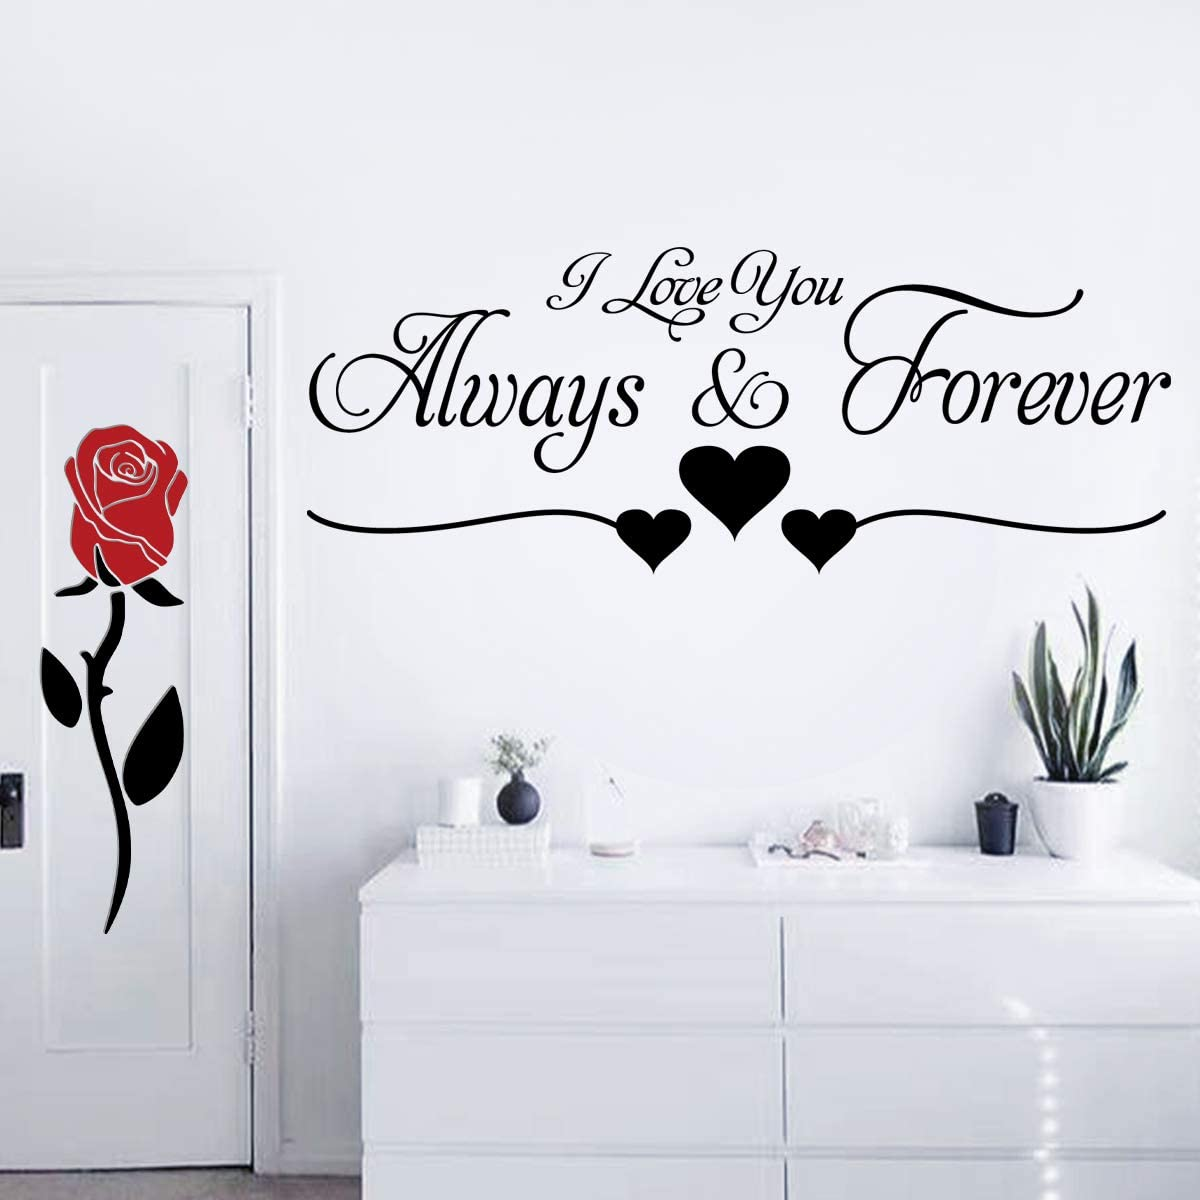 2 Pieces Vinyl Wall Sticker I Love You Always & Forever and Creative Romantic Removable Flowers Rose Wall Decal Wall Art Decor Flowers Wall Decals for Couple Bedroom Living Room Girls Room Home Decor.